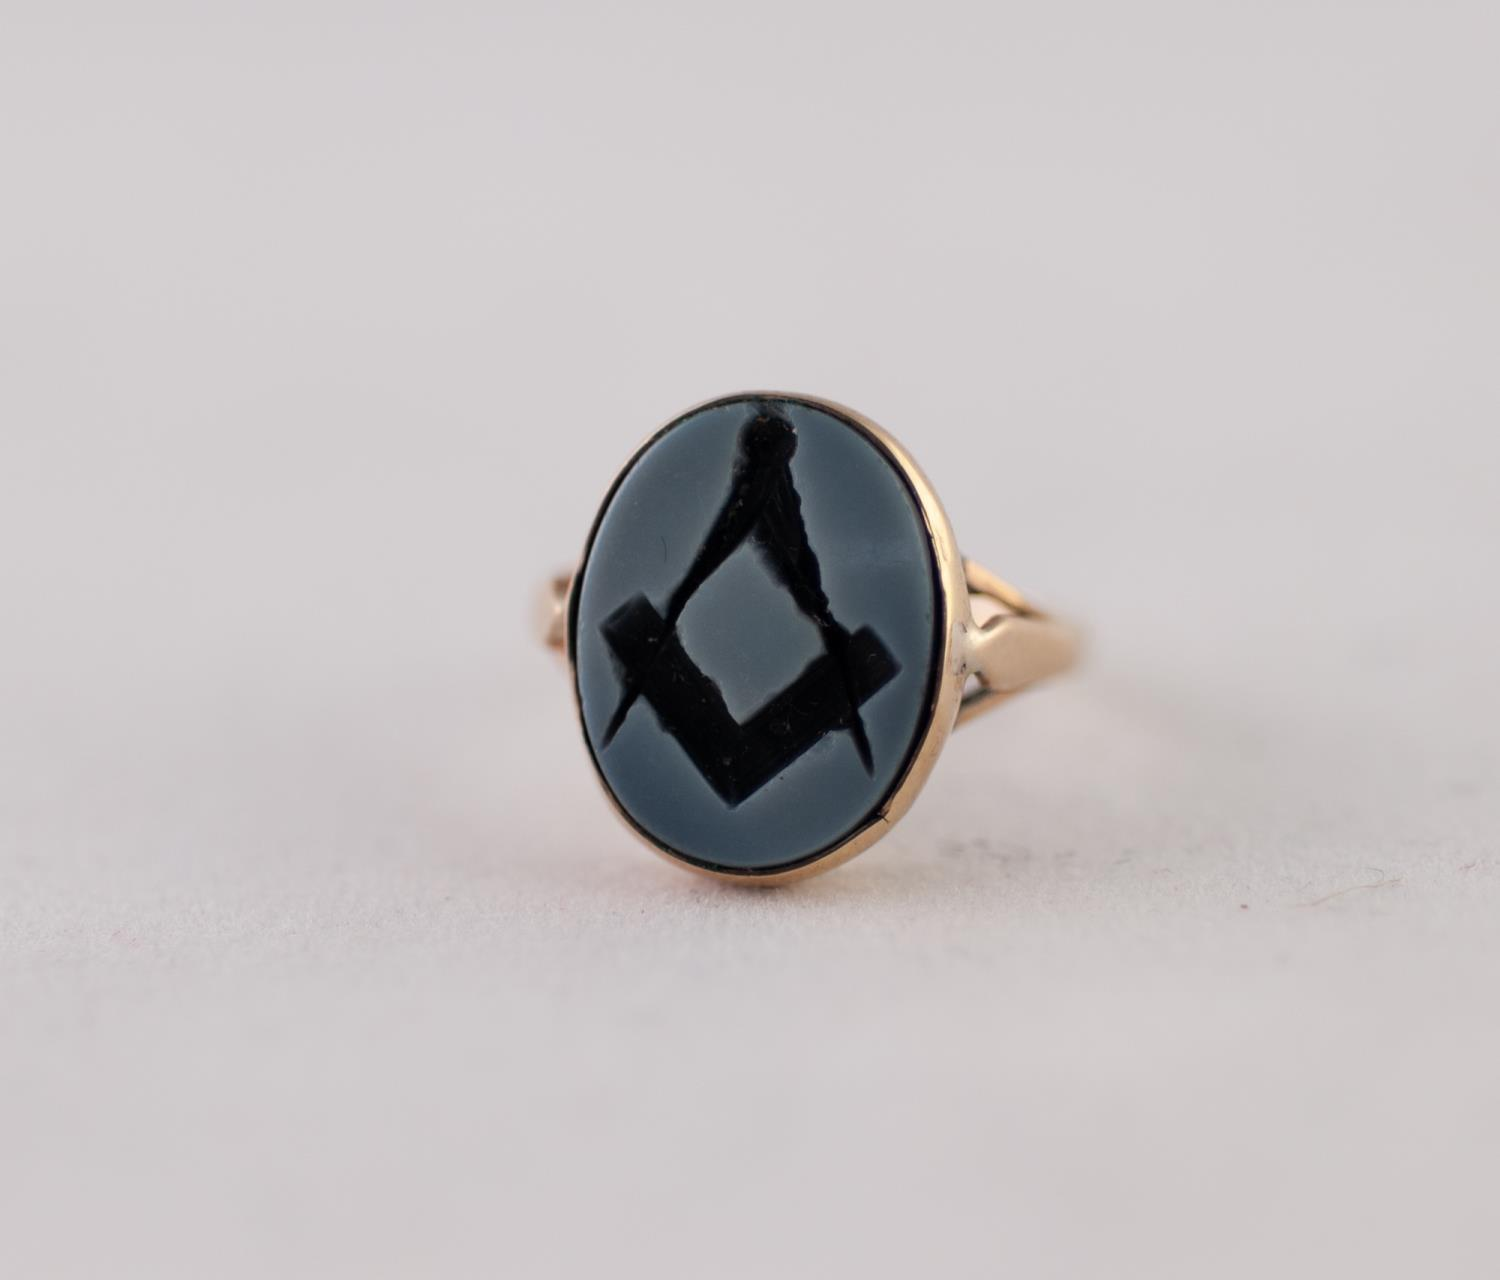 Lot 223 - SARDONYX MASONIC INTAGLIO RING. An oval plaque with engraved Masonic motif, to forked shoulders,